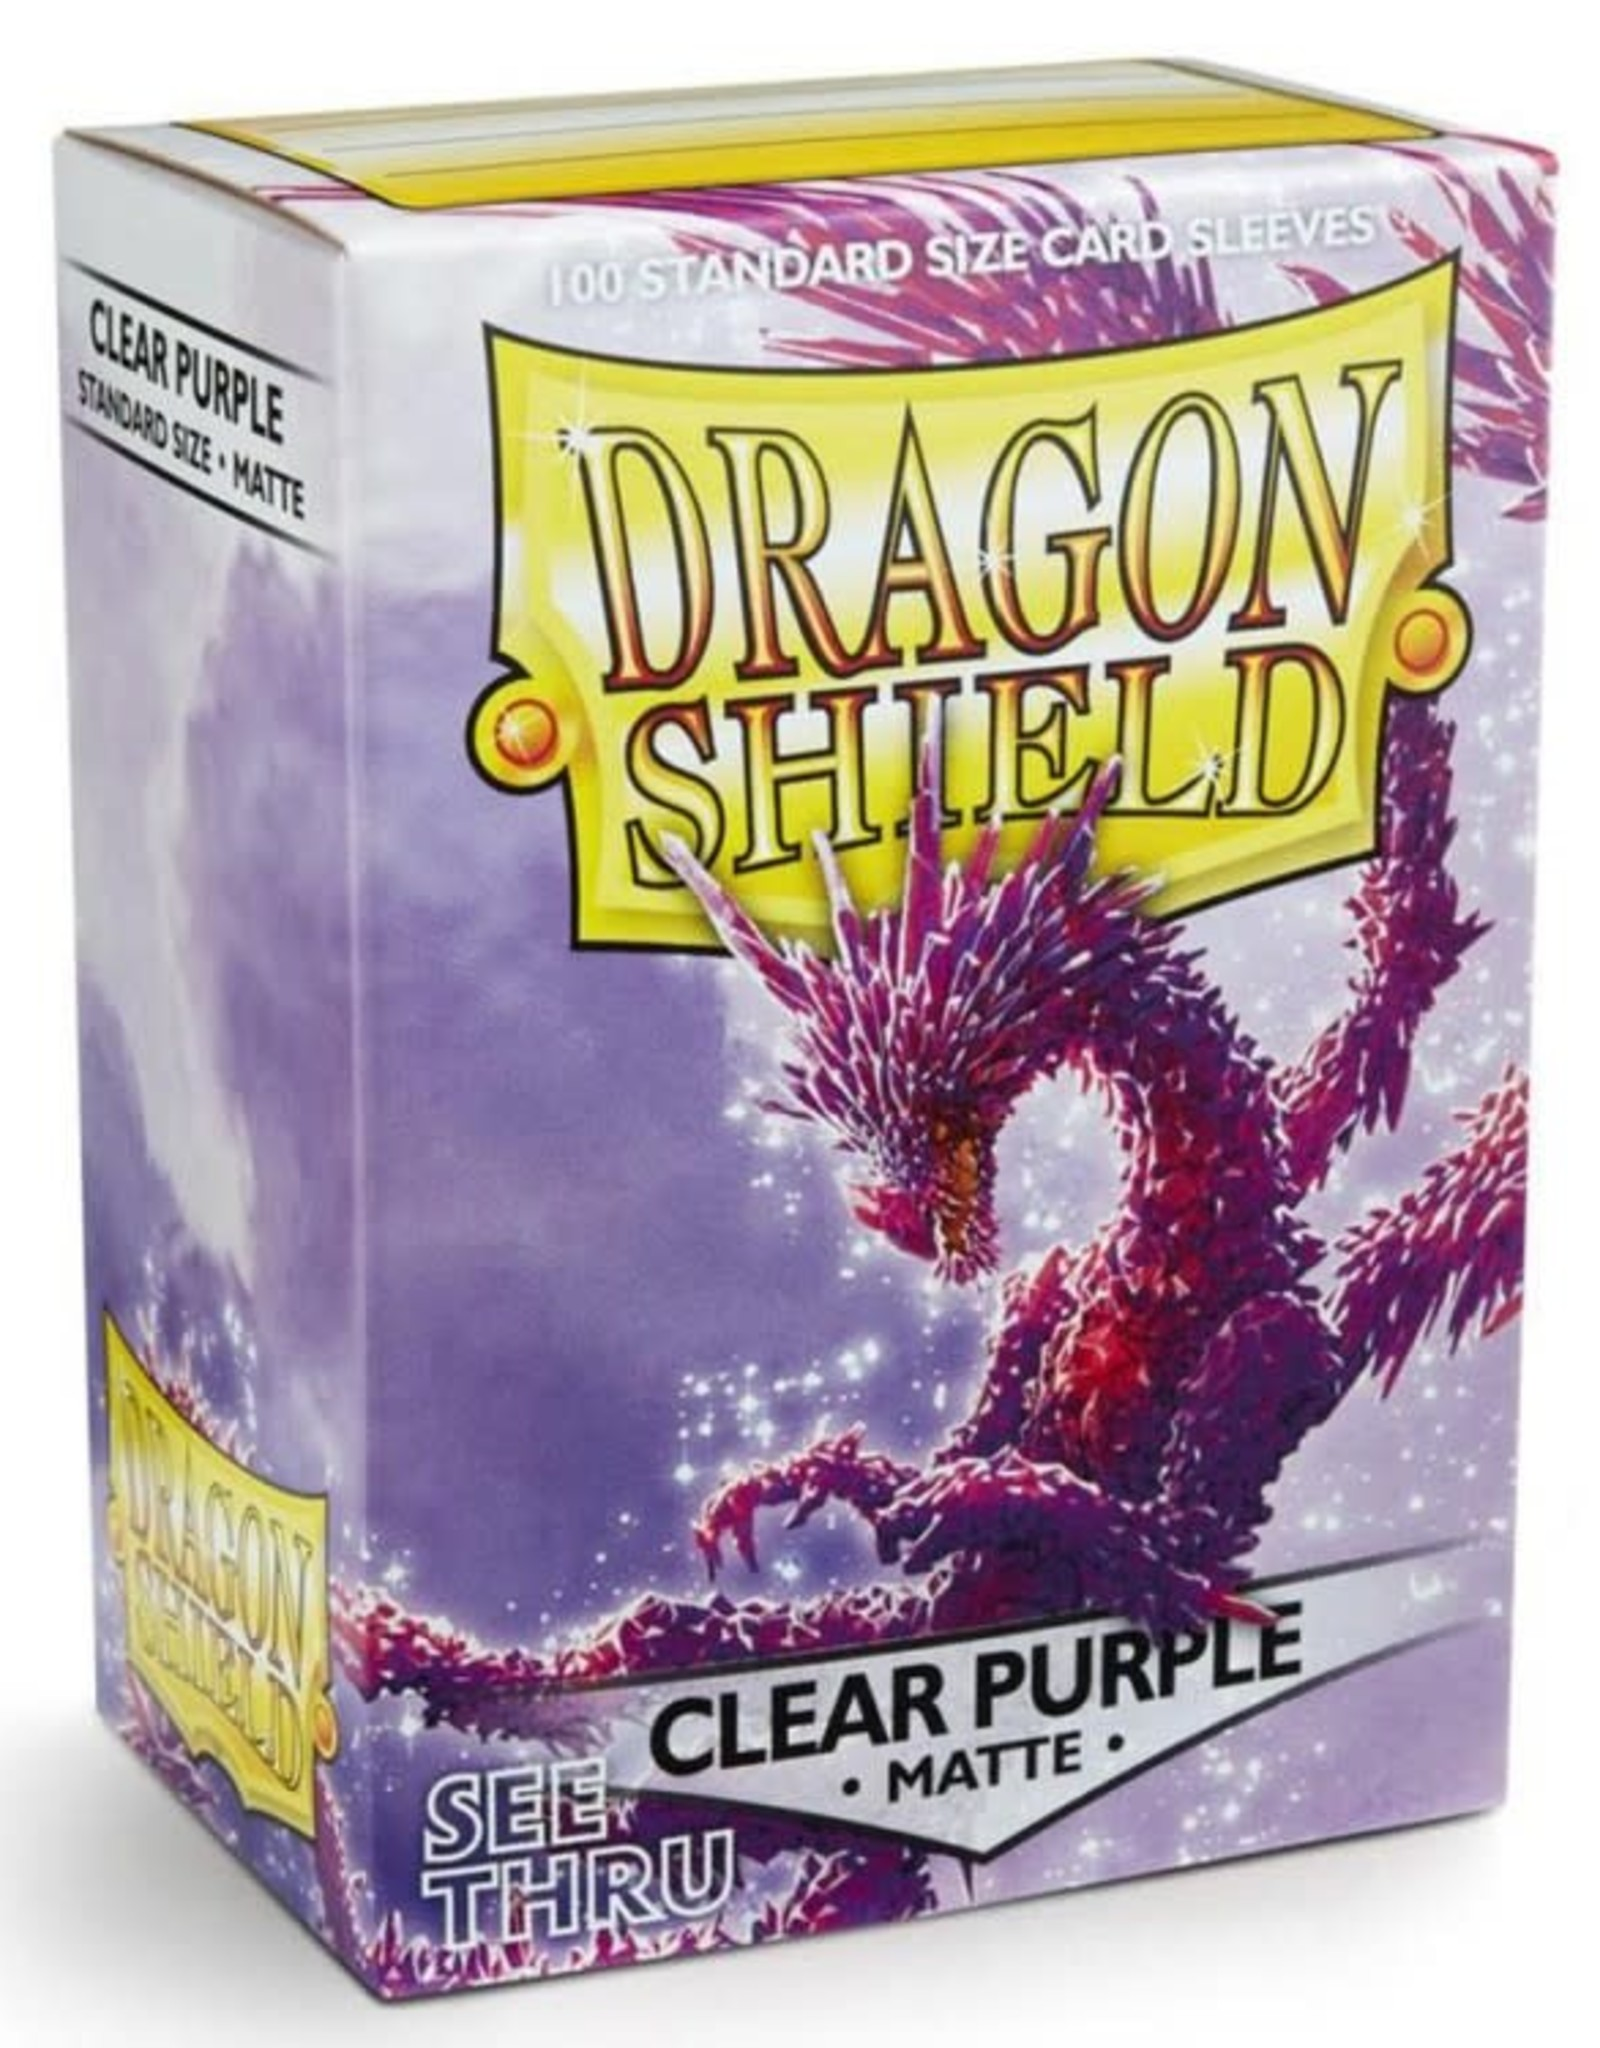 Dragon Shields (100) Matte - Clear (Purple)